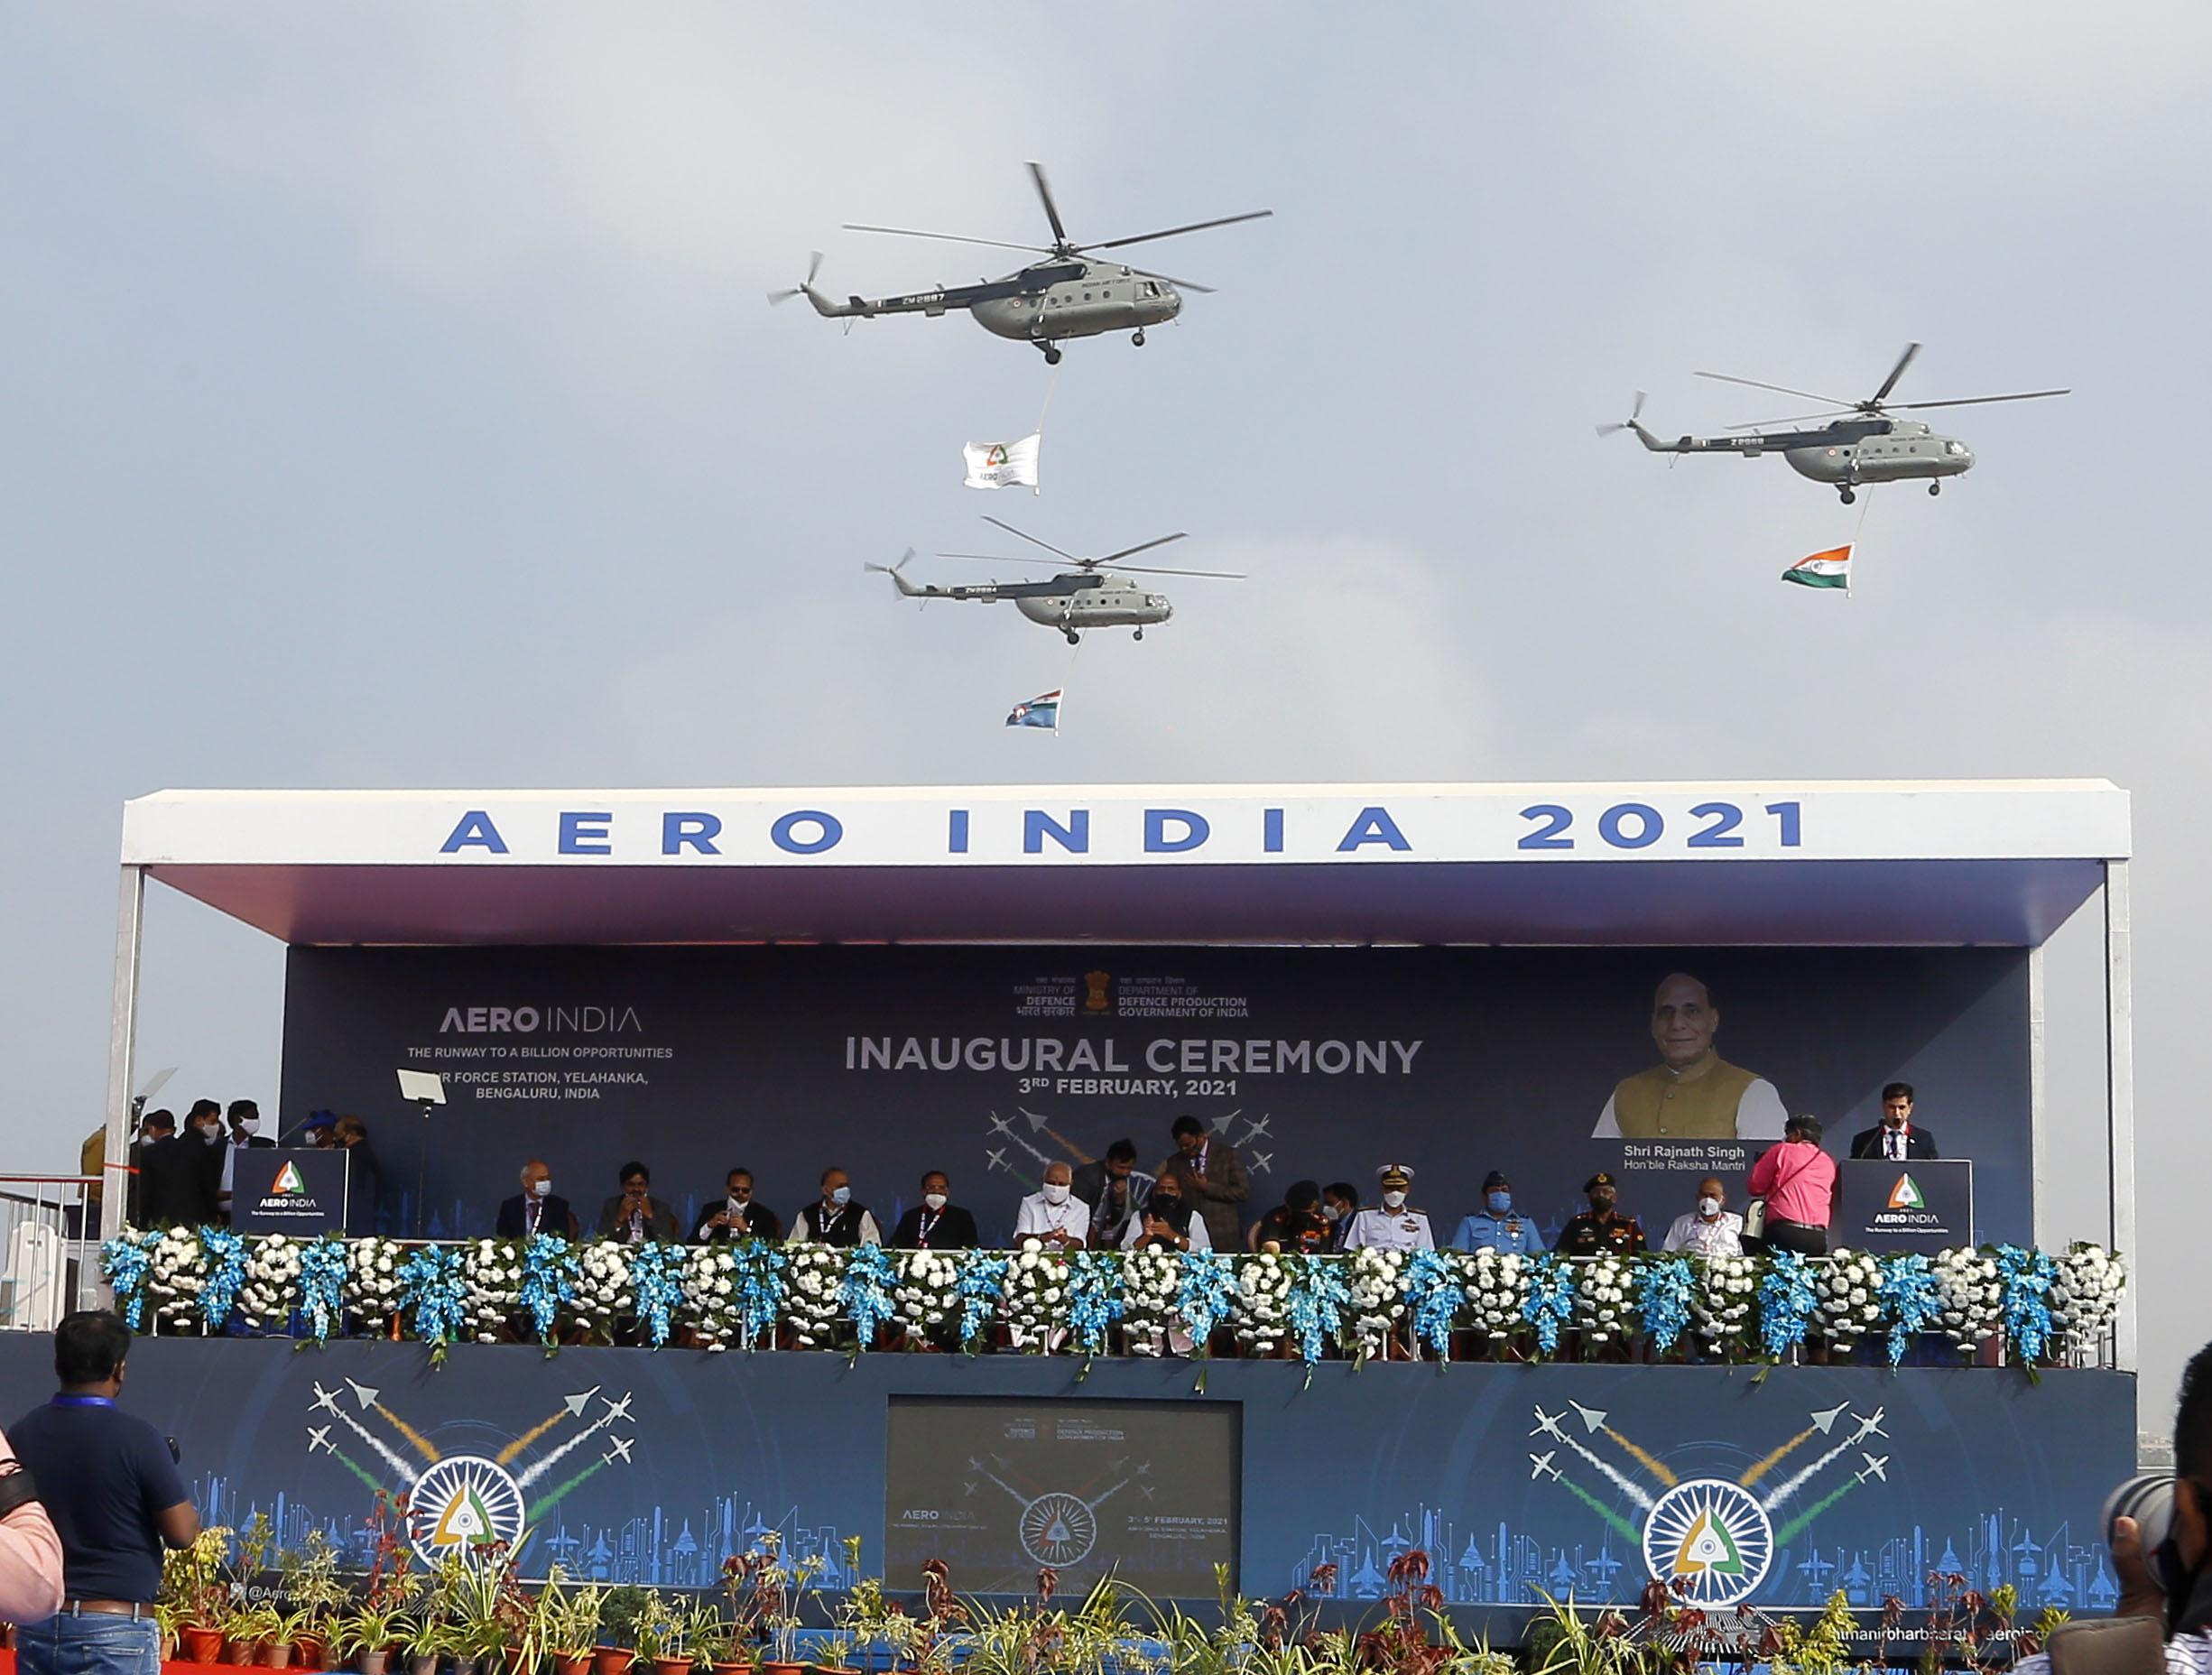 The Union Minister for Defence, Shri Rajnath Singh inaugurates the biennial air show, Aero India 2021, at the Air Force Station, Yelahanka, in Bengaluru on February 03, 2021.The Union Minister for Chemicals and Fertilizers, Shri D.V. Sadananda Gowda, the Chief Minister of Karnataka, Shri B.S. Yediyurappa, the Chief of Defence Staff (CDS), General Bipin Rawat and other dignitaries are also seen.